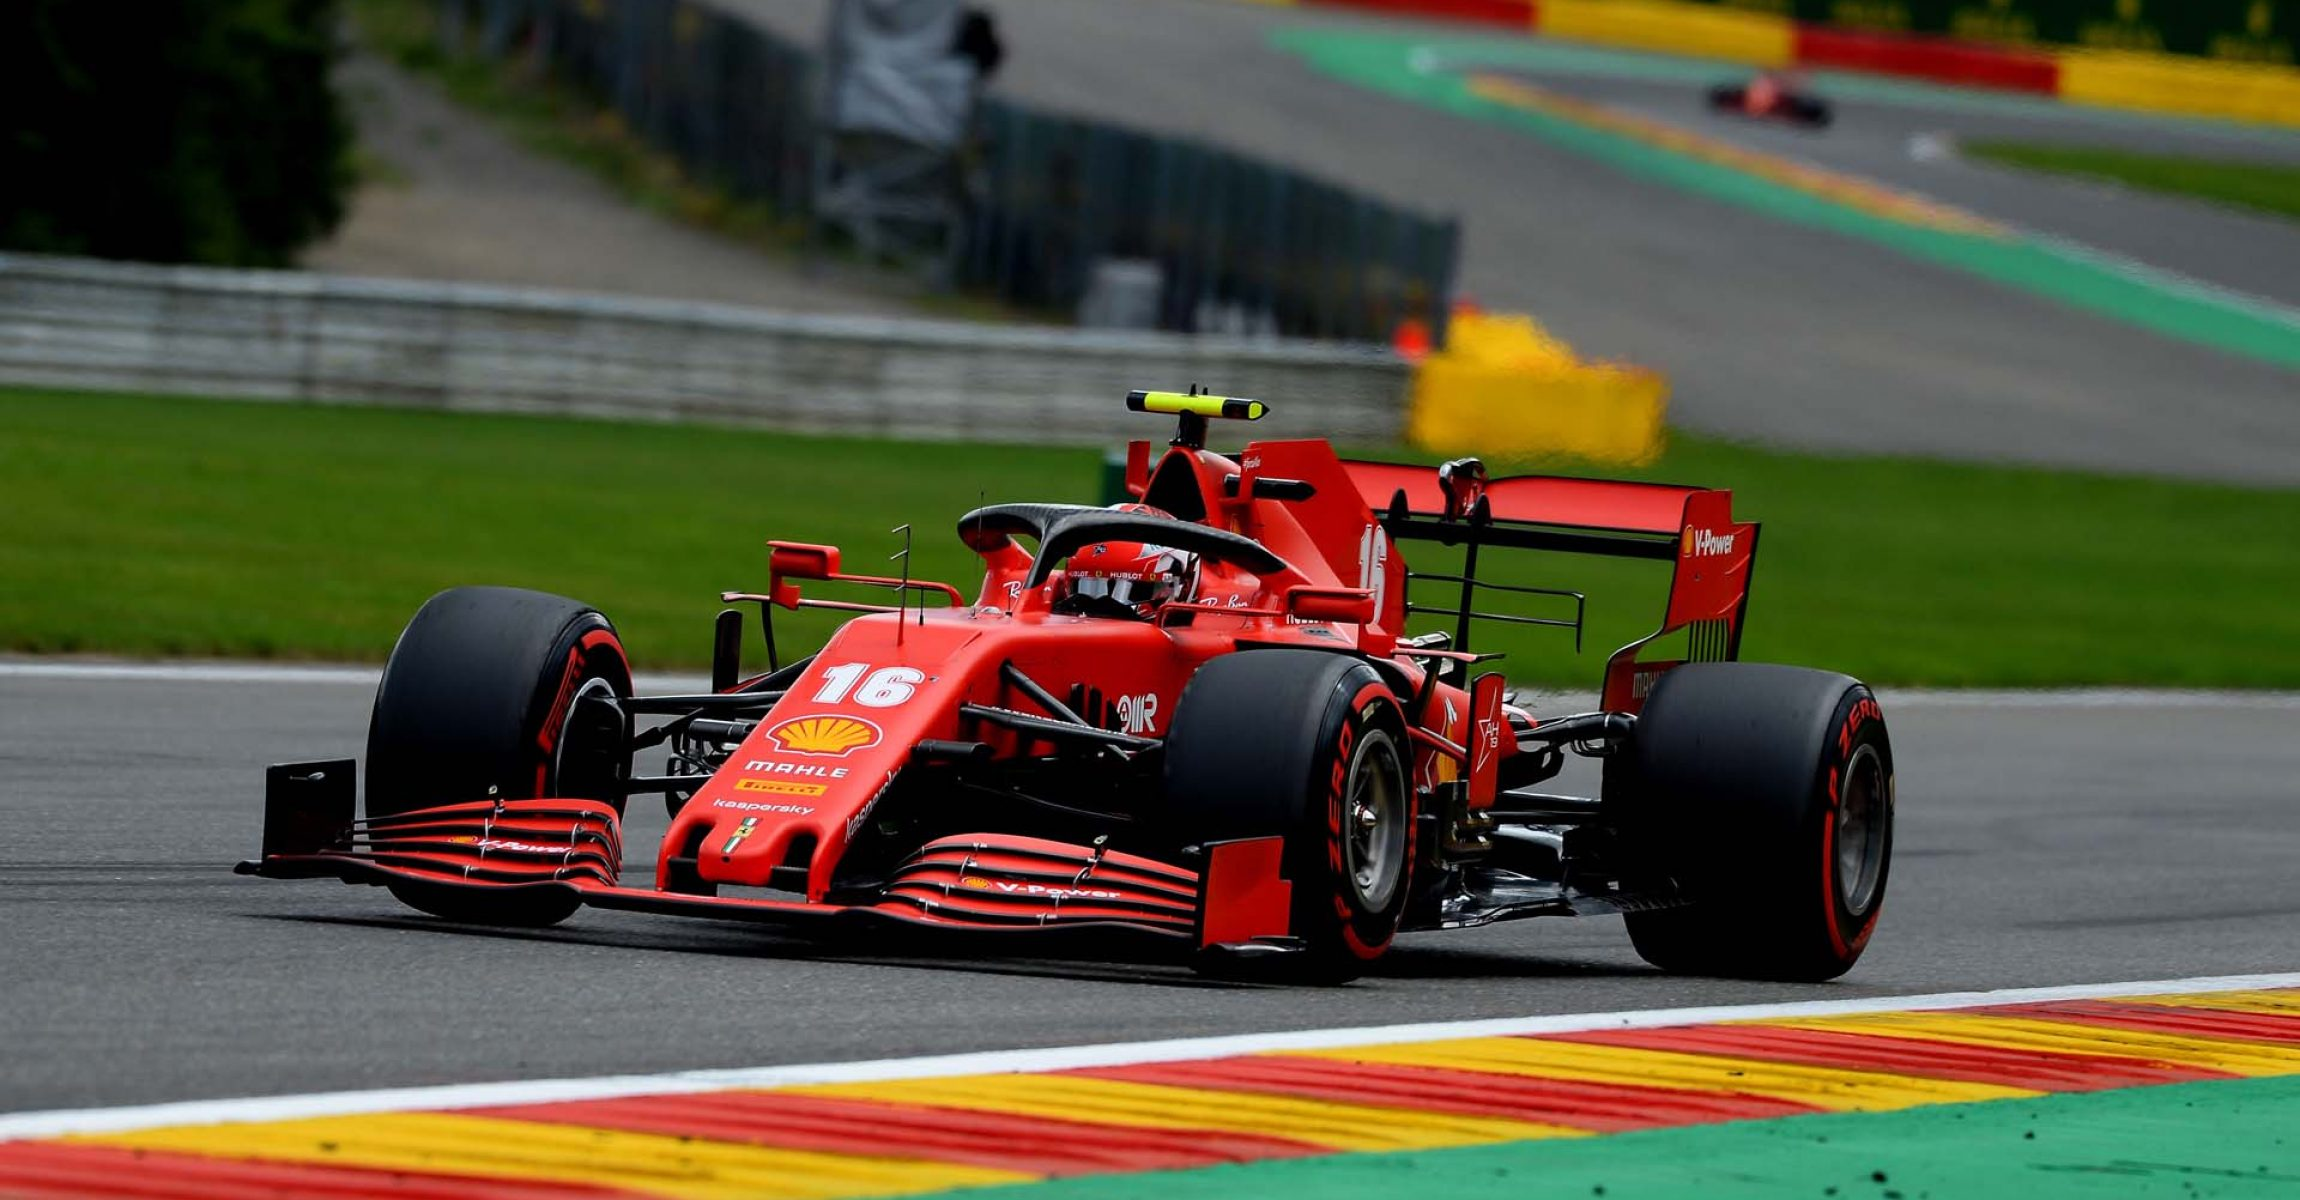 GP BELGIO F1/2020 -  SABATO 29/08/2020    credit: @Scuderia Ferrari Press Office Charles Leclerc